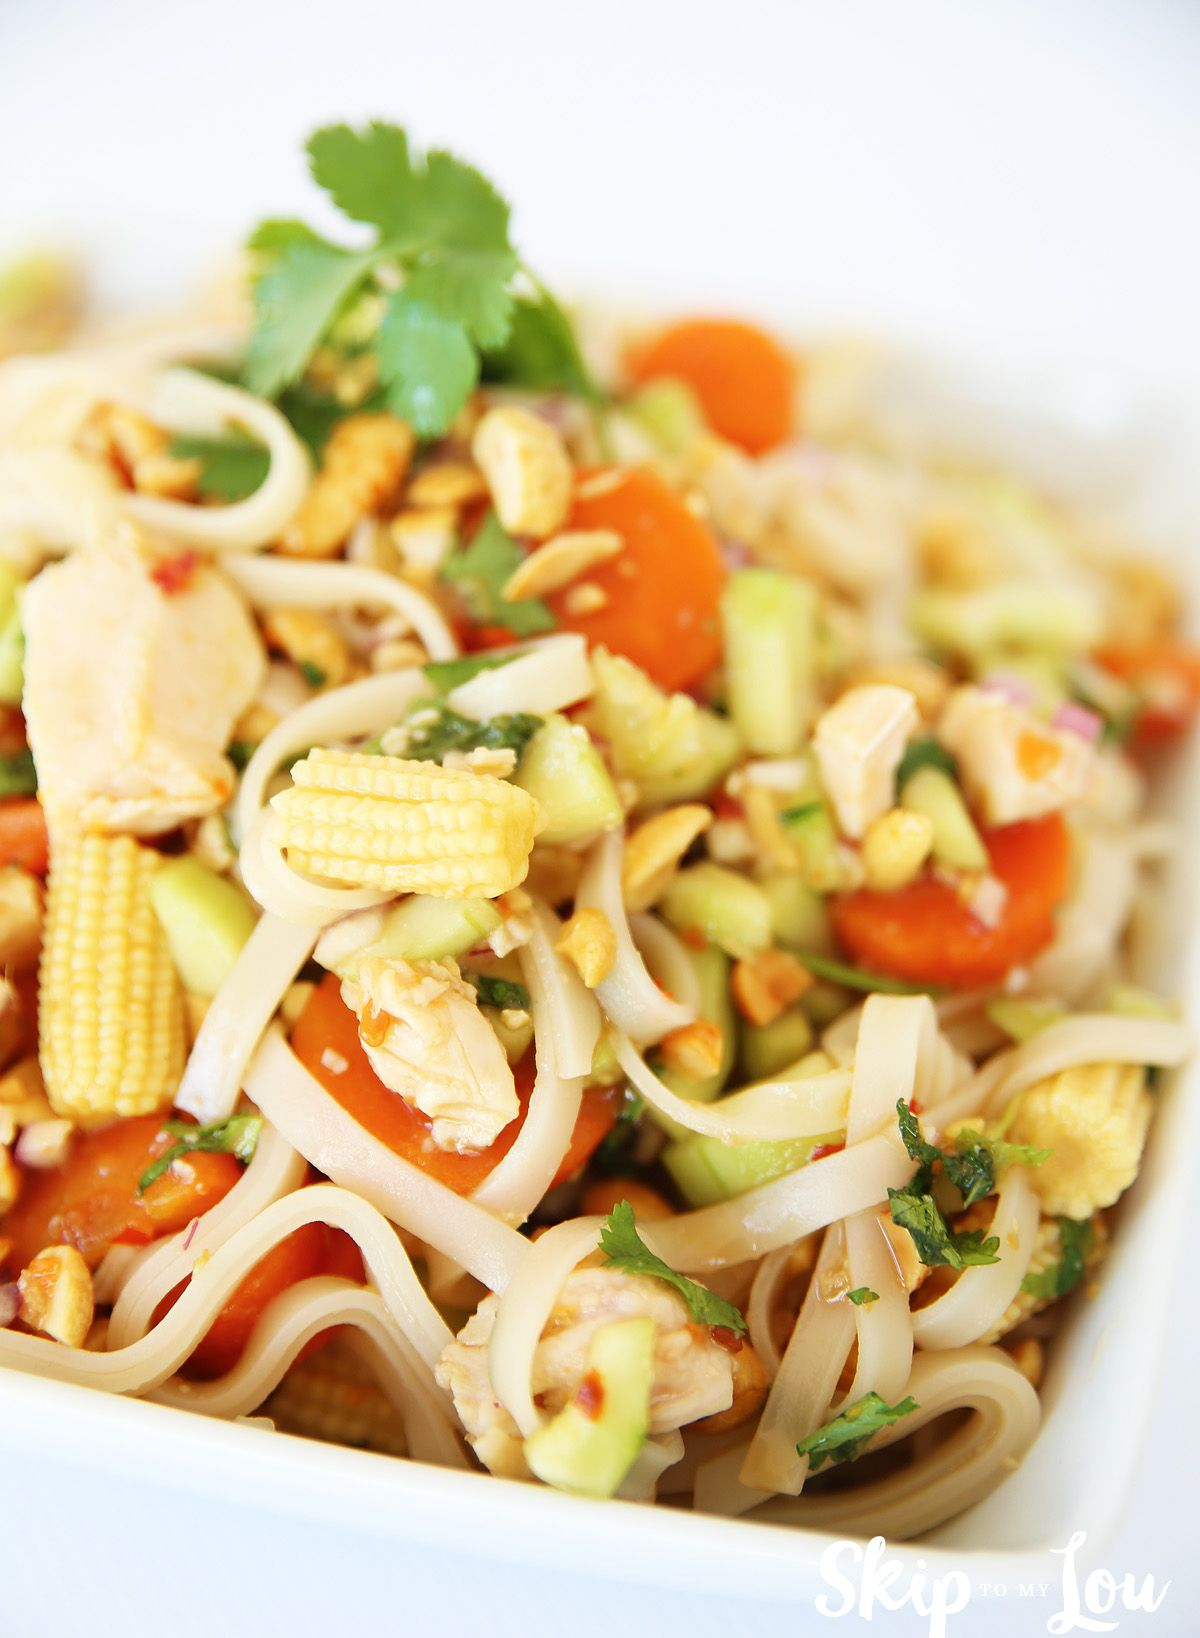 Malaysian Tangy Rice Noodle Salad recipe ad